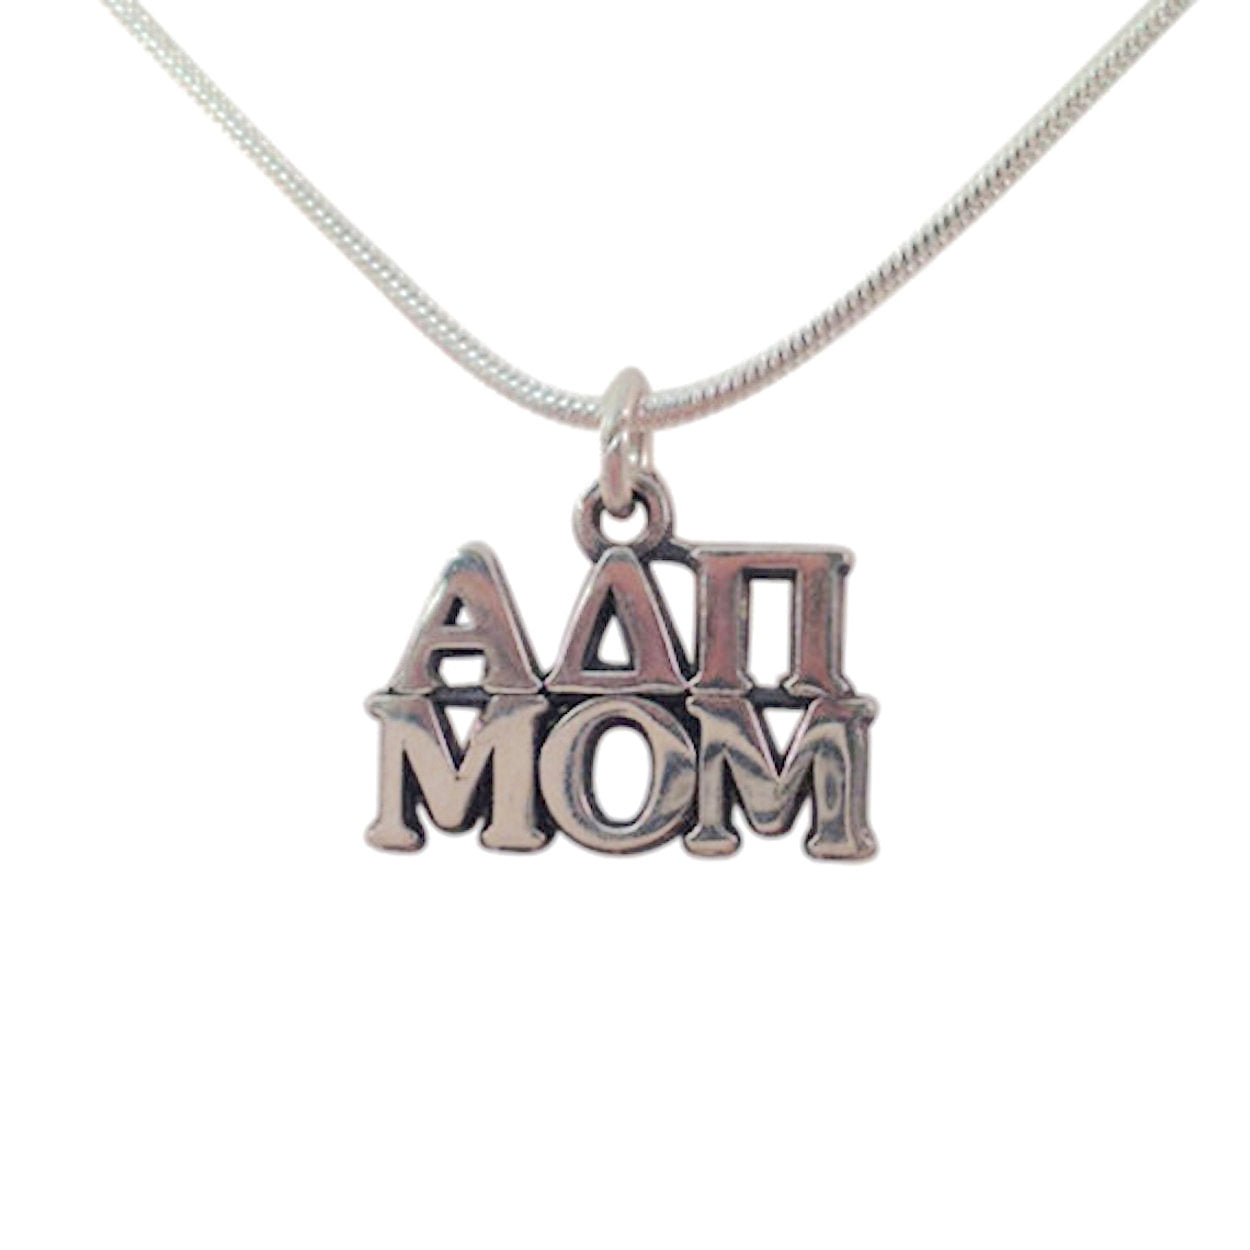 Alpha Delta Pi Mom Charm the perfect sorority mom gift! Add a 16 in, 18 in, or 20 in sterling silver box chain. Is it a gift? Let us ship for you in a gift box tied with ribbon and a handwritten gift card. #AlphaDeltaPi jewelry to love. Shop #adpi gifts at M&D Sorority Gifts!